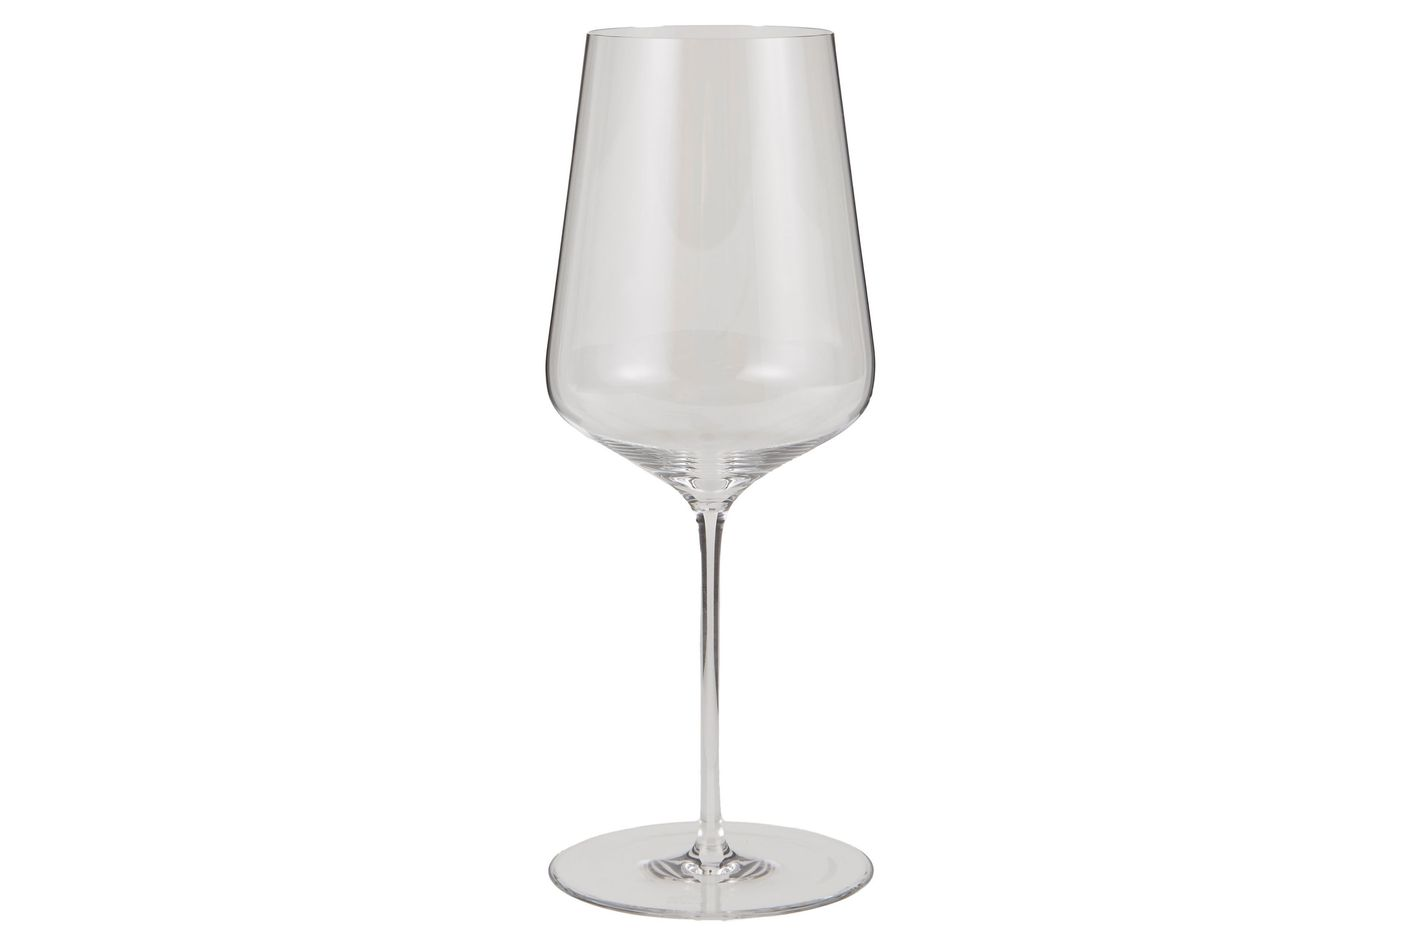 Zalto Denk'Art Universal Wine Glass